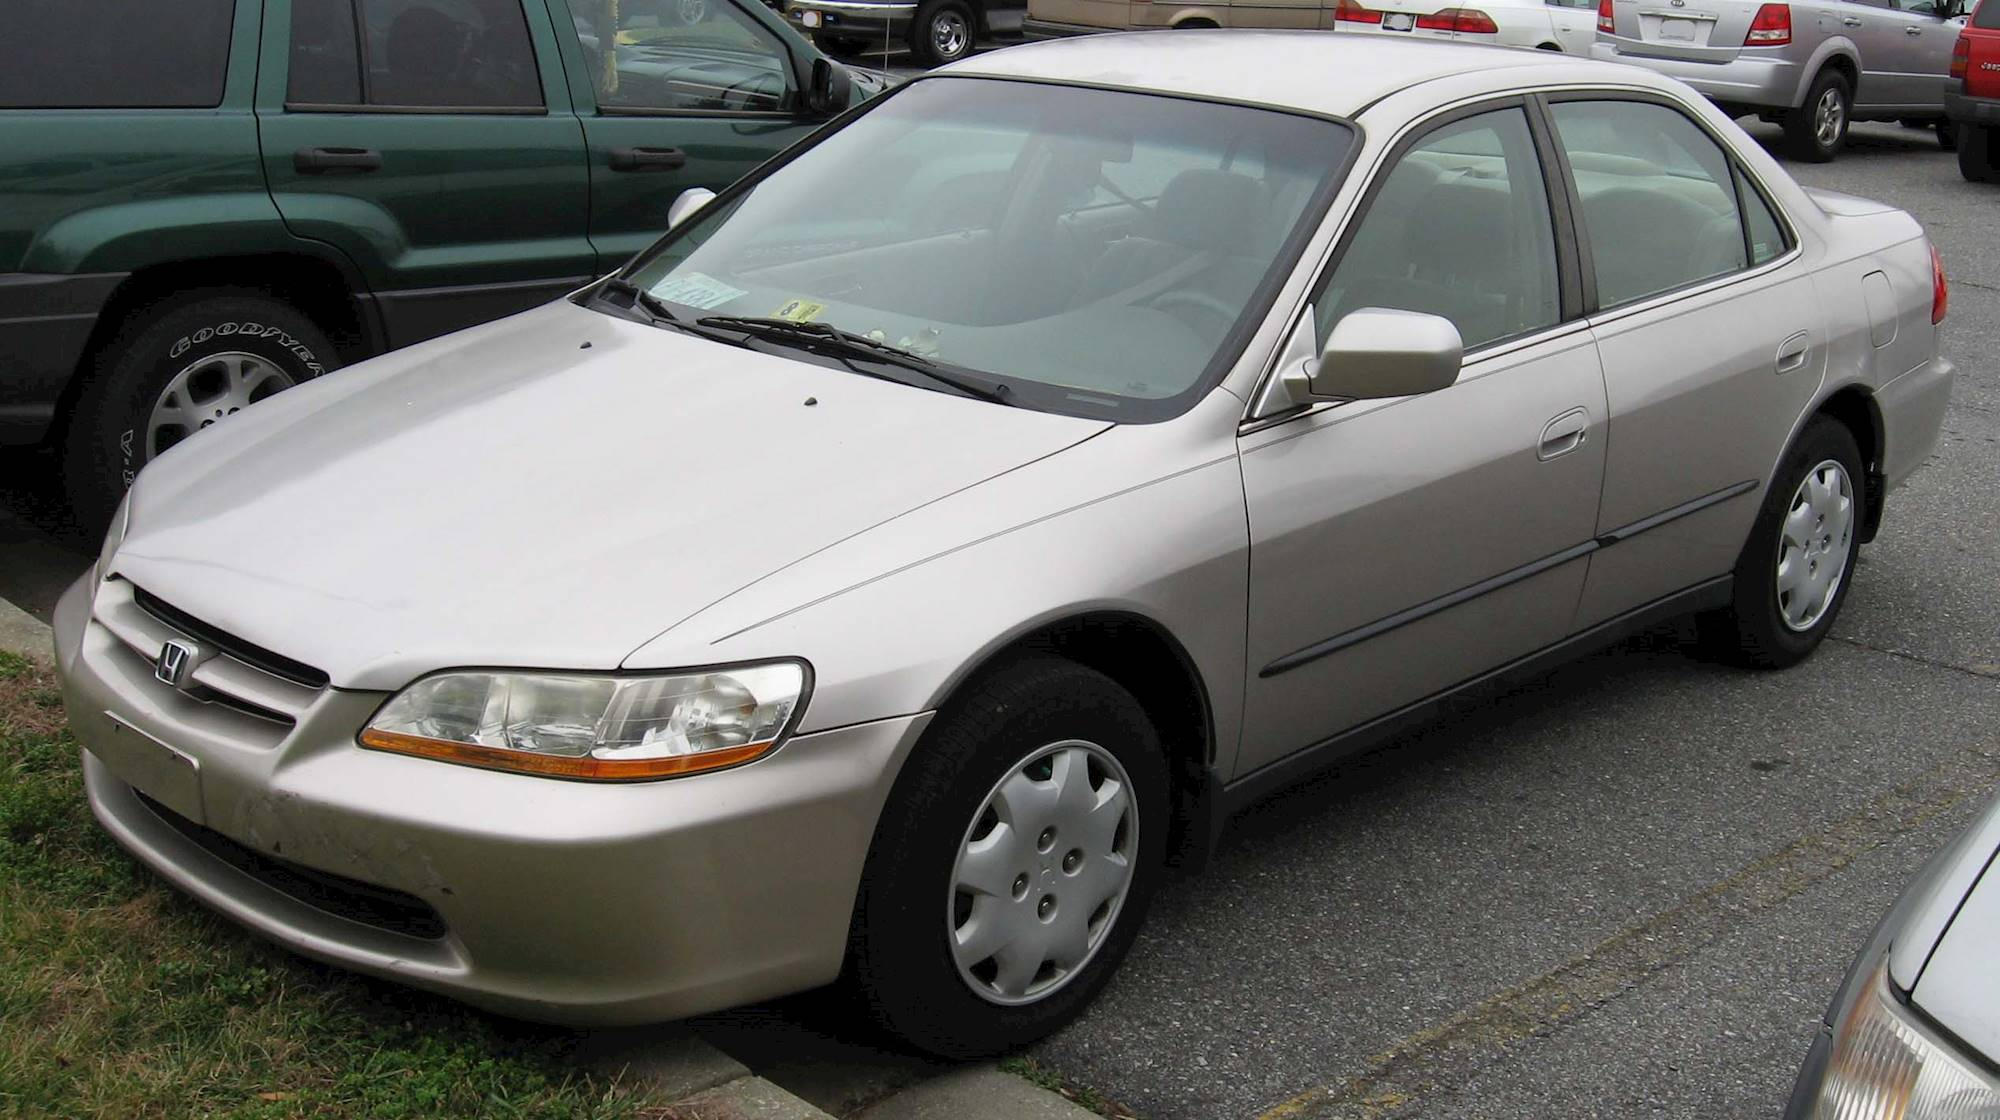 2000 honda accord ex v6 coupe curb weight